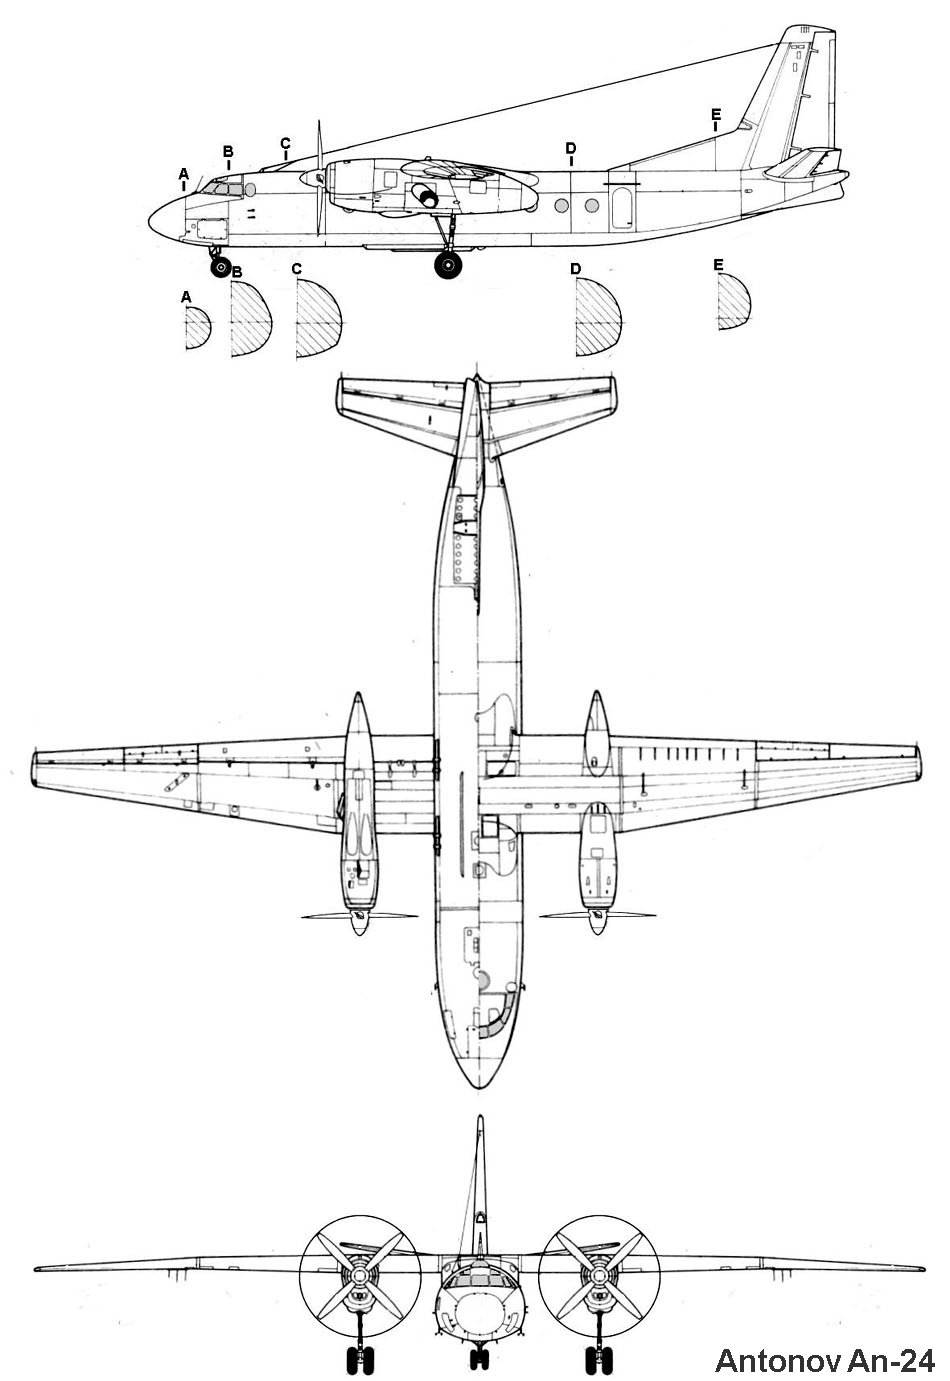 An-24 blueprint